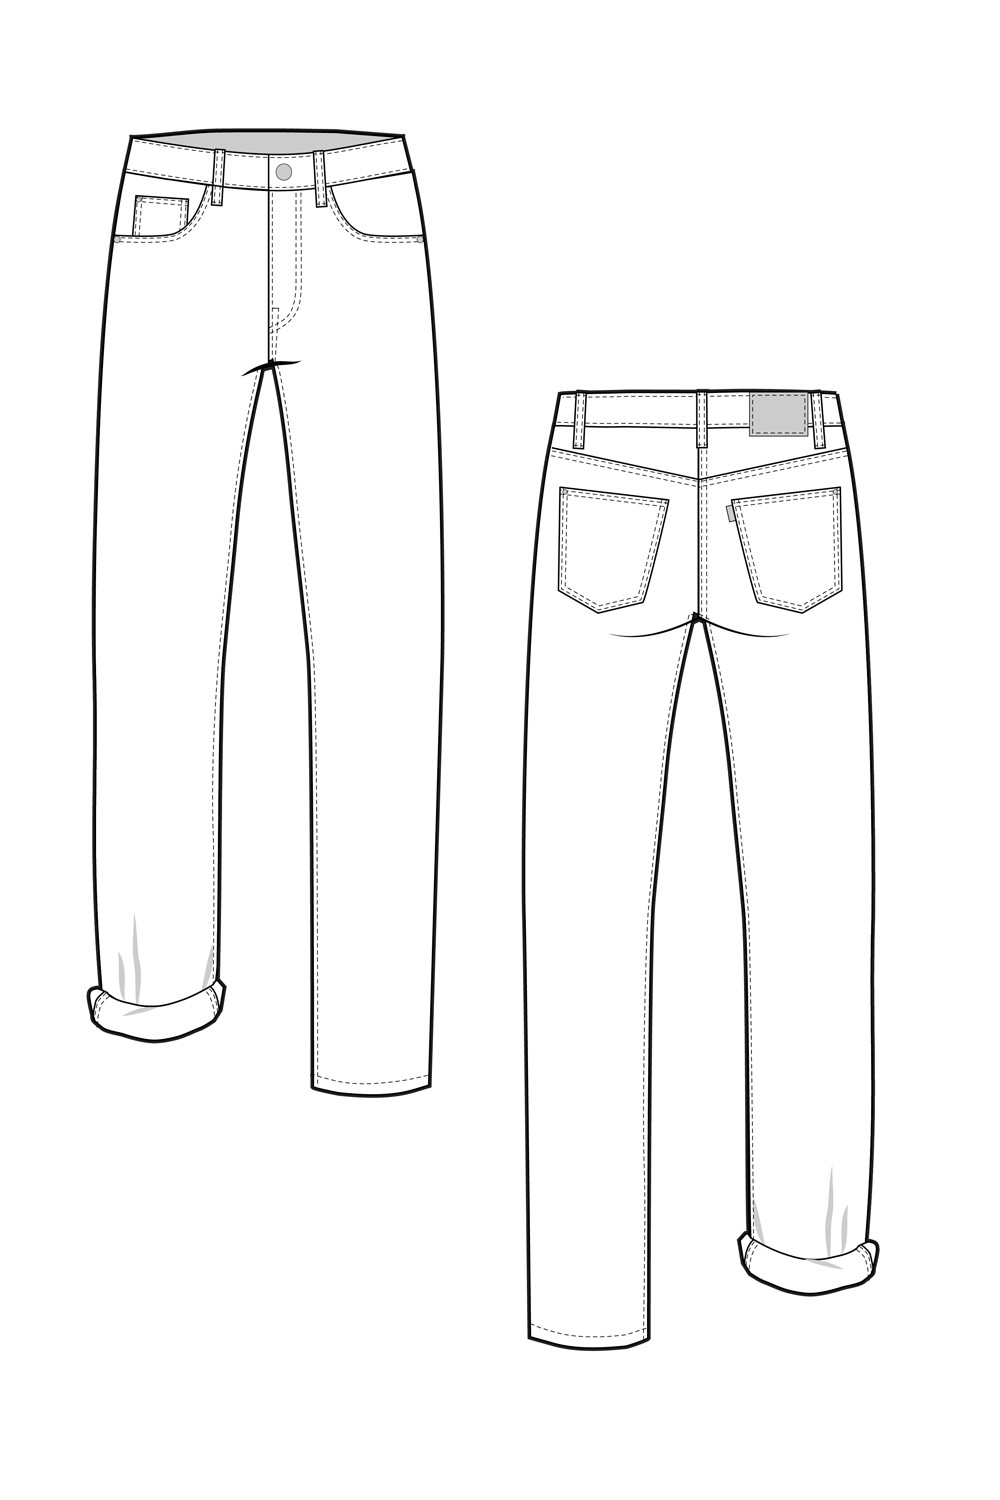 Morgan_Boyfriend_Jeans_pattern_Technical_flat-01_copy.jpg